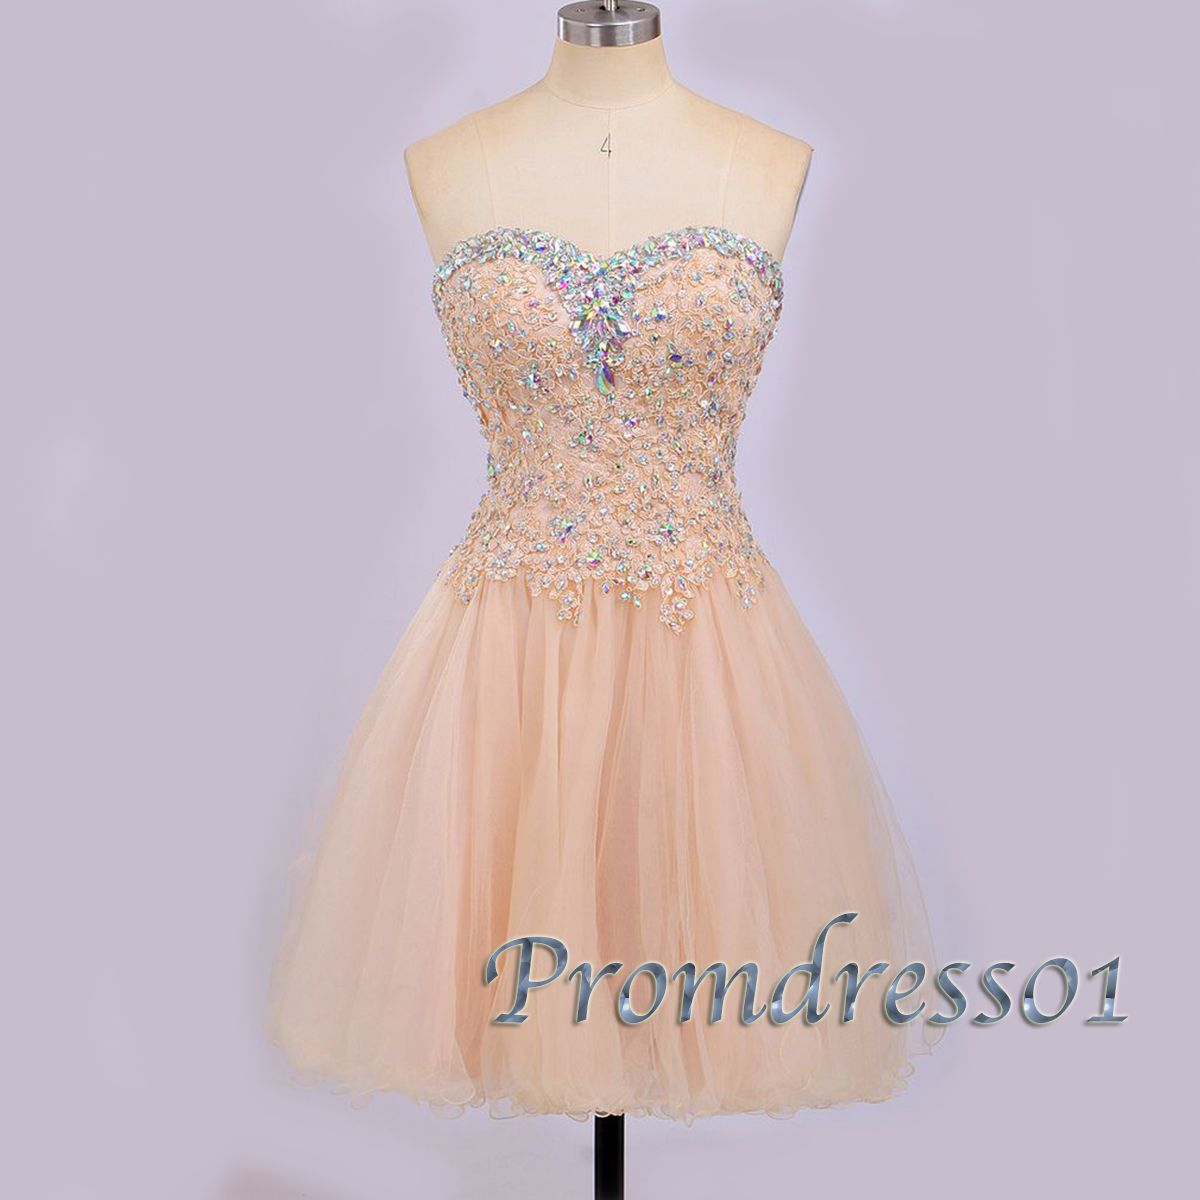 Prom dresses short sweetheart dress for teens cute champagne tulle